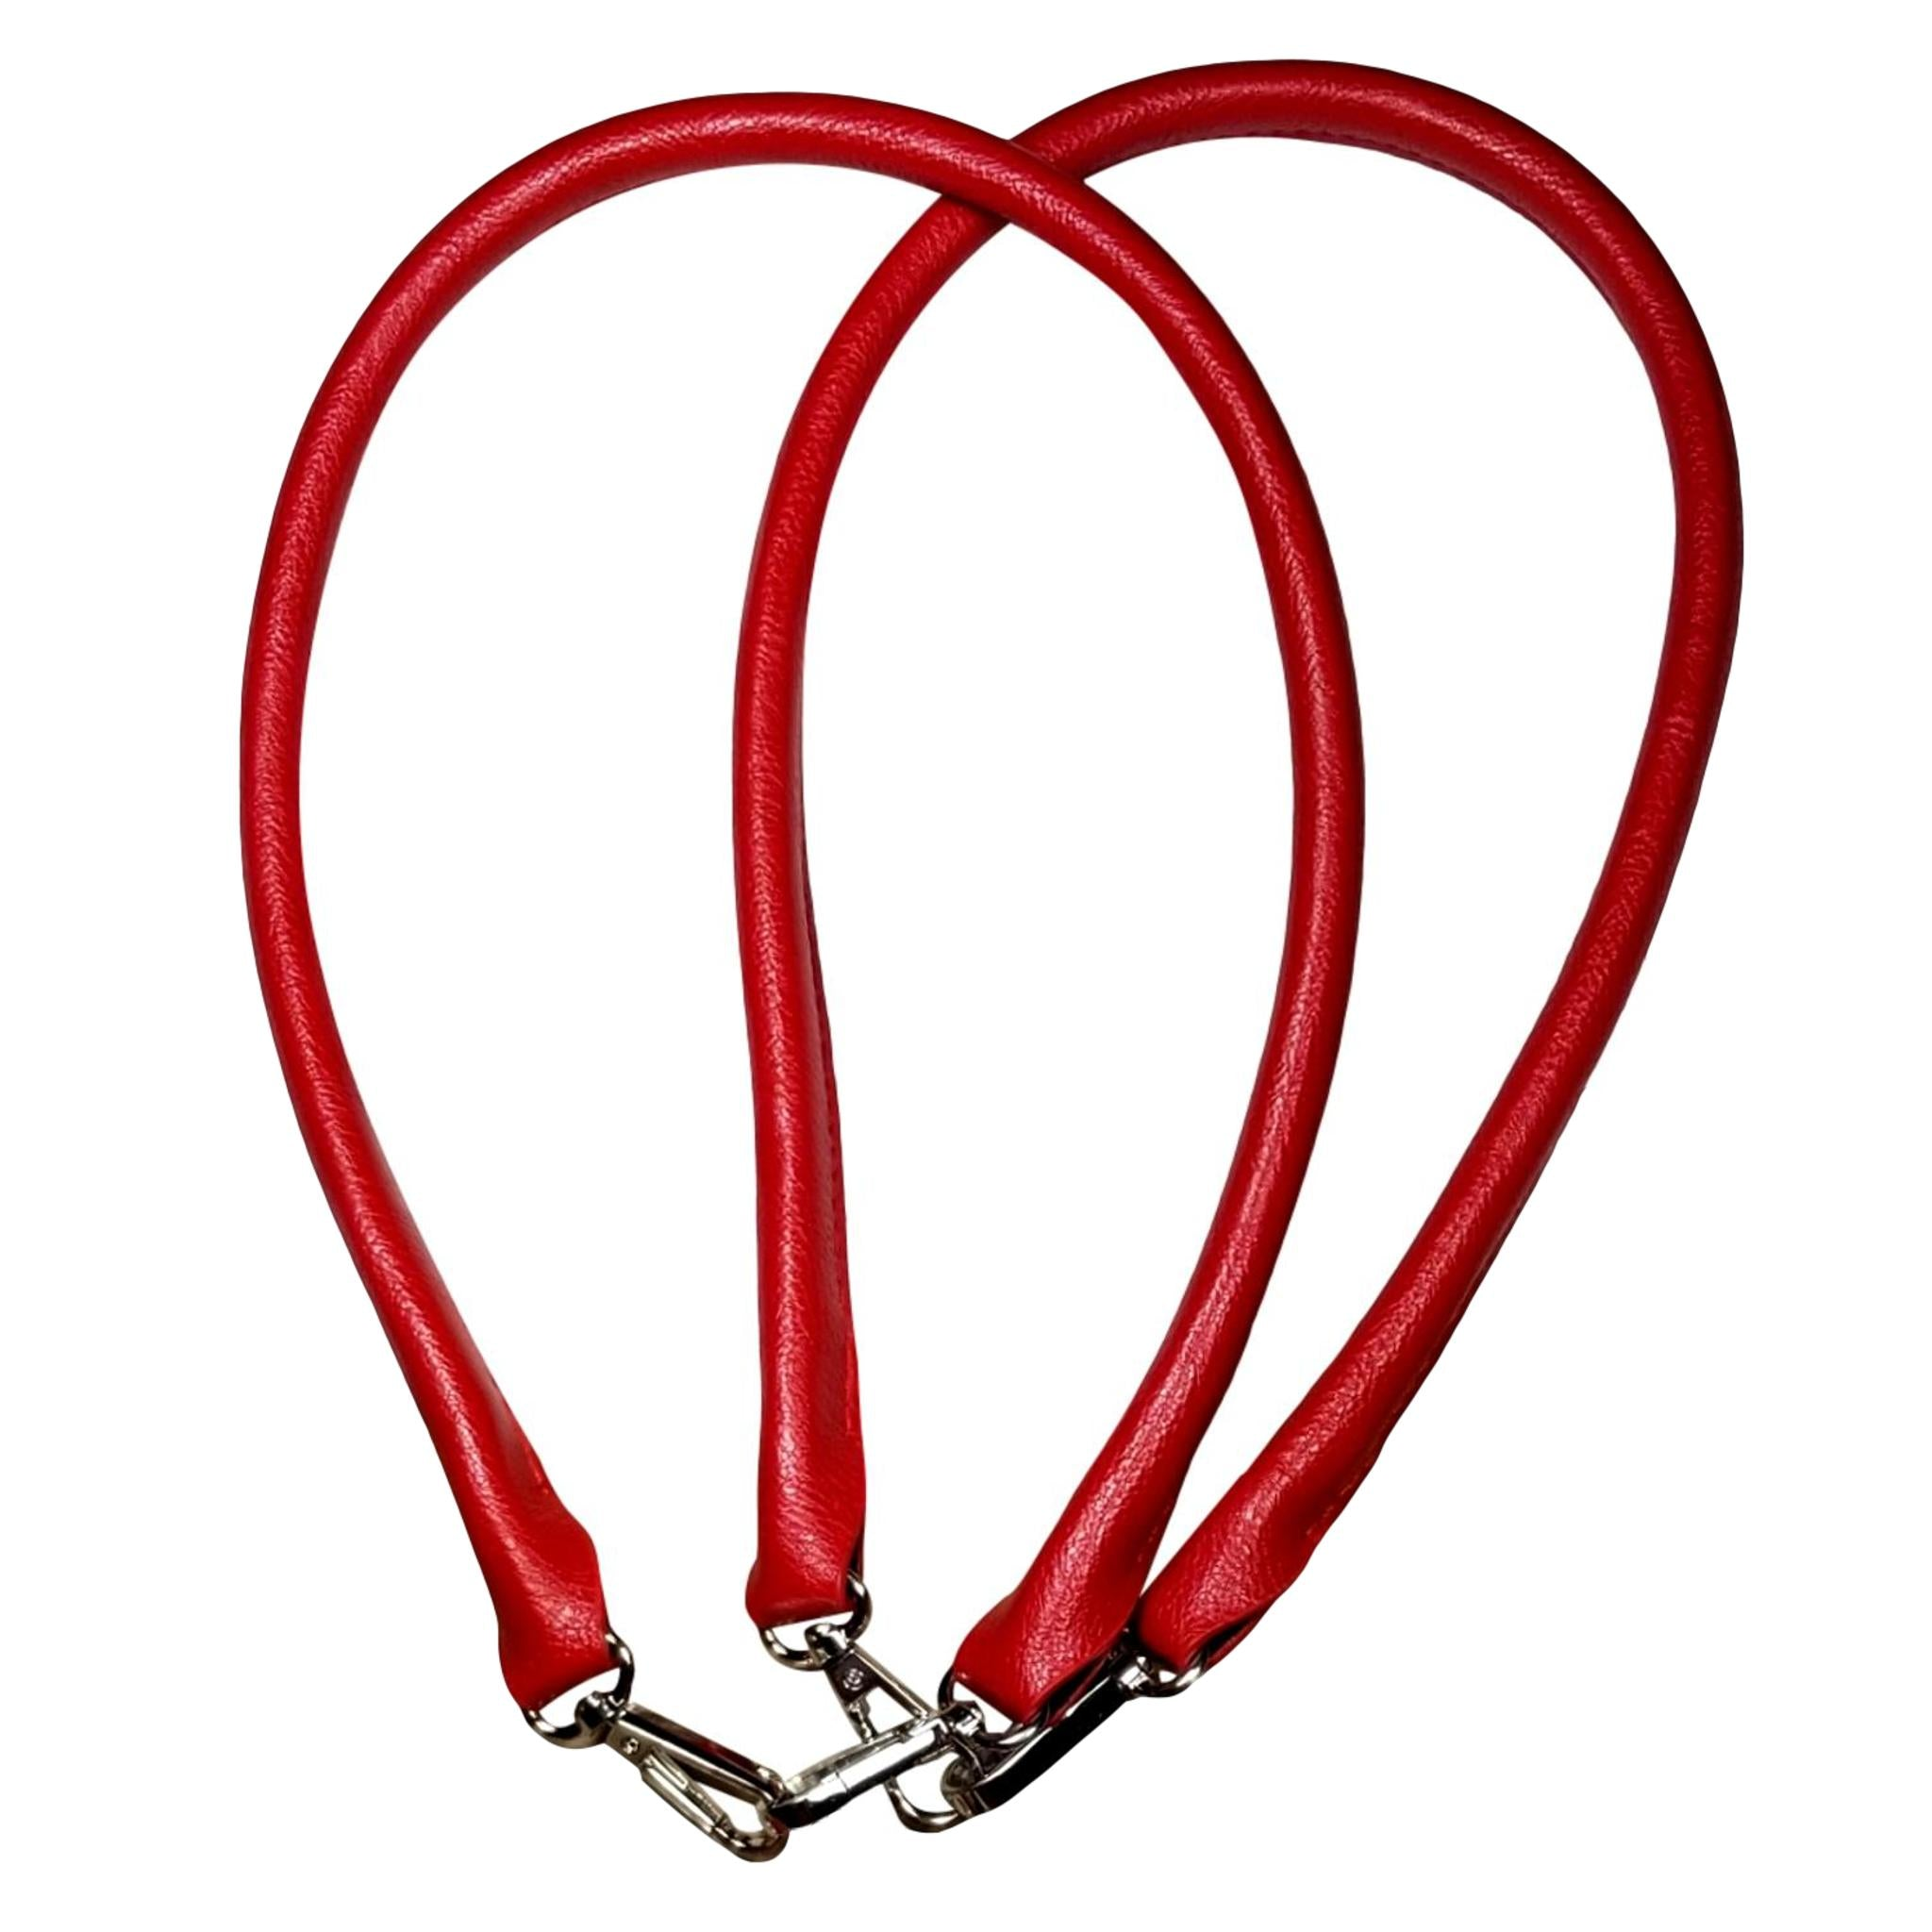 Designer Strap Handle - Red